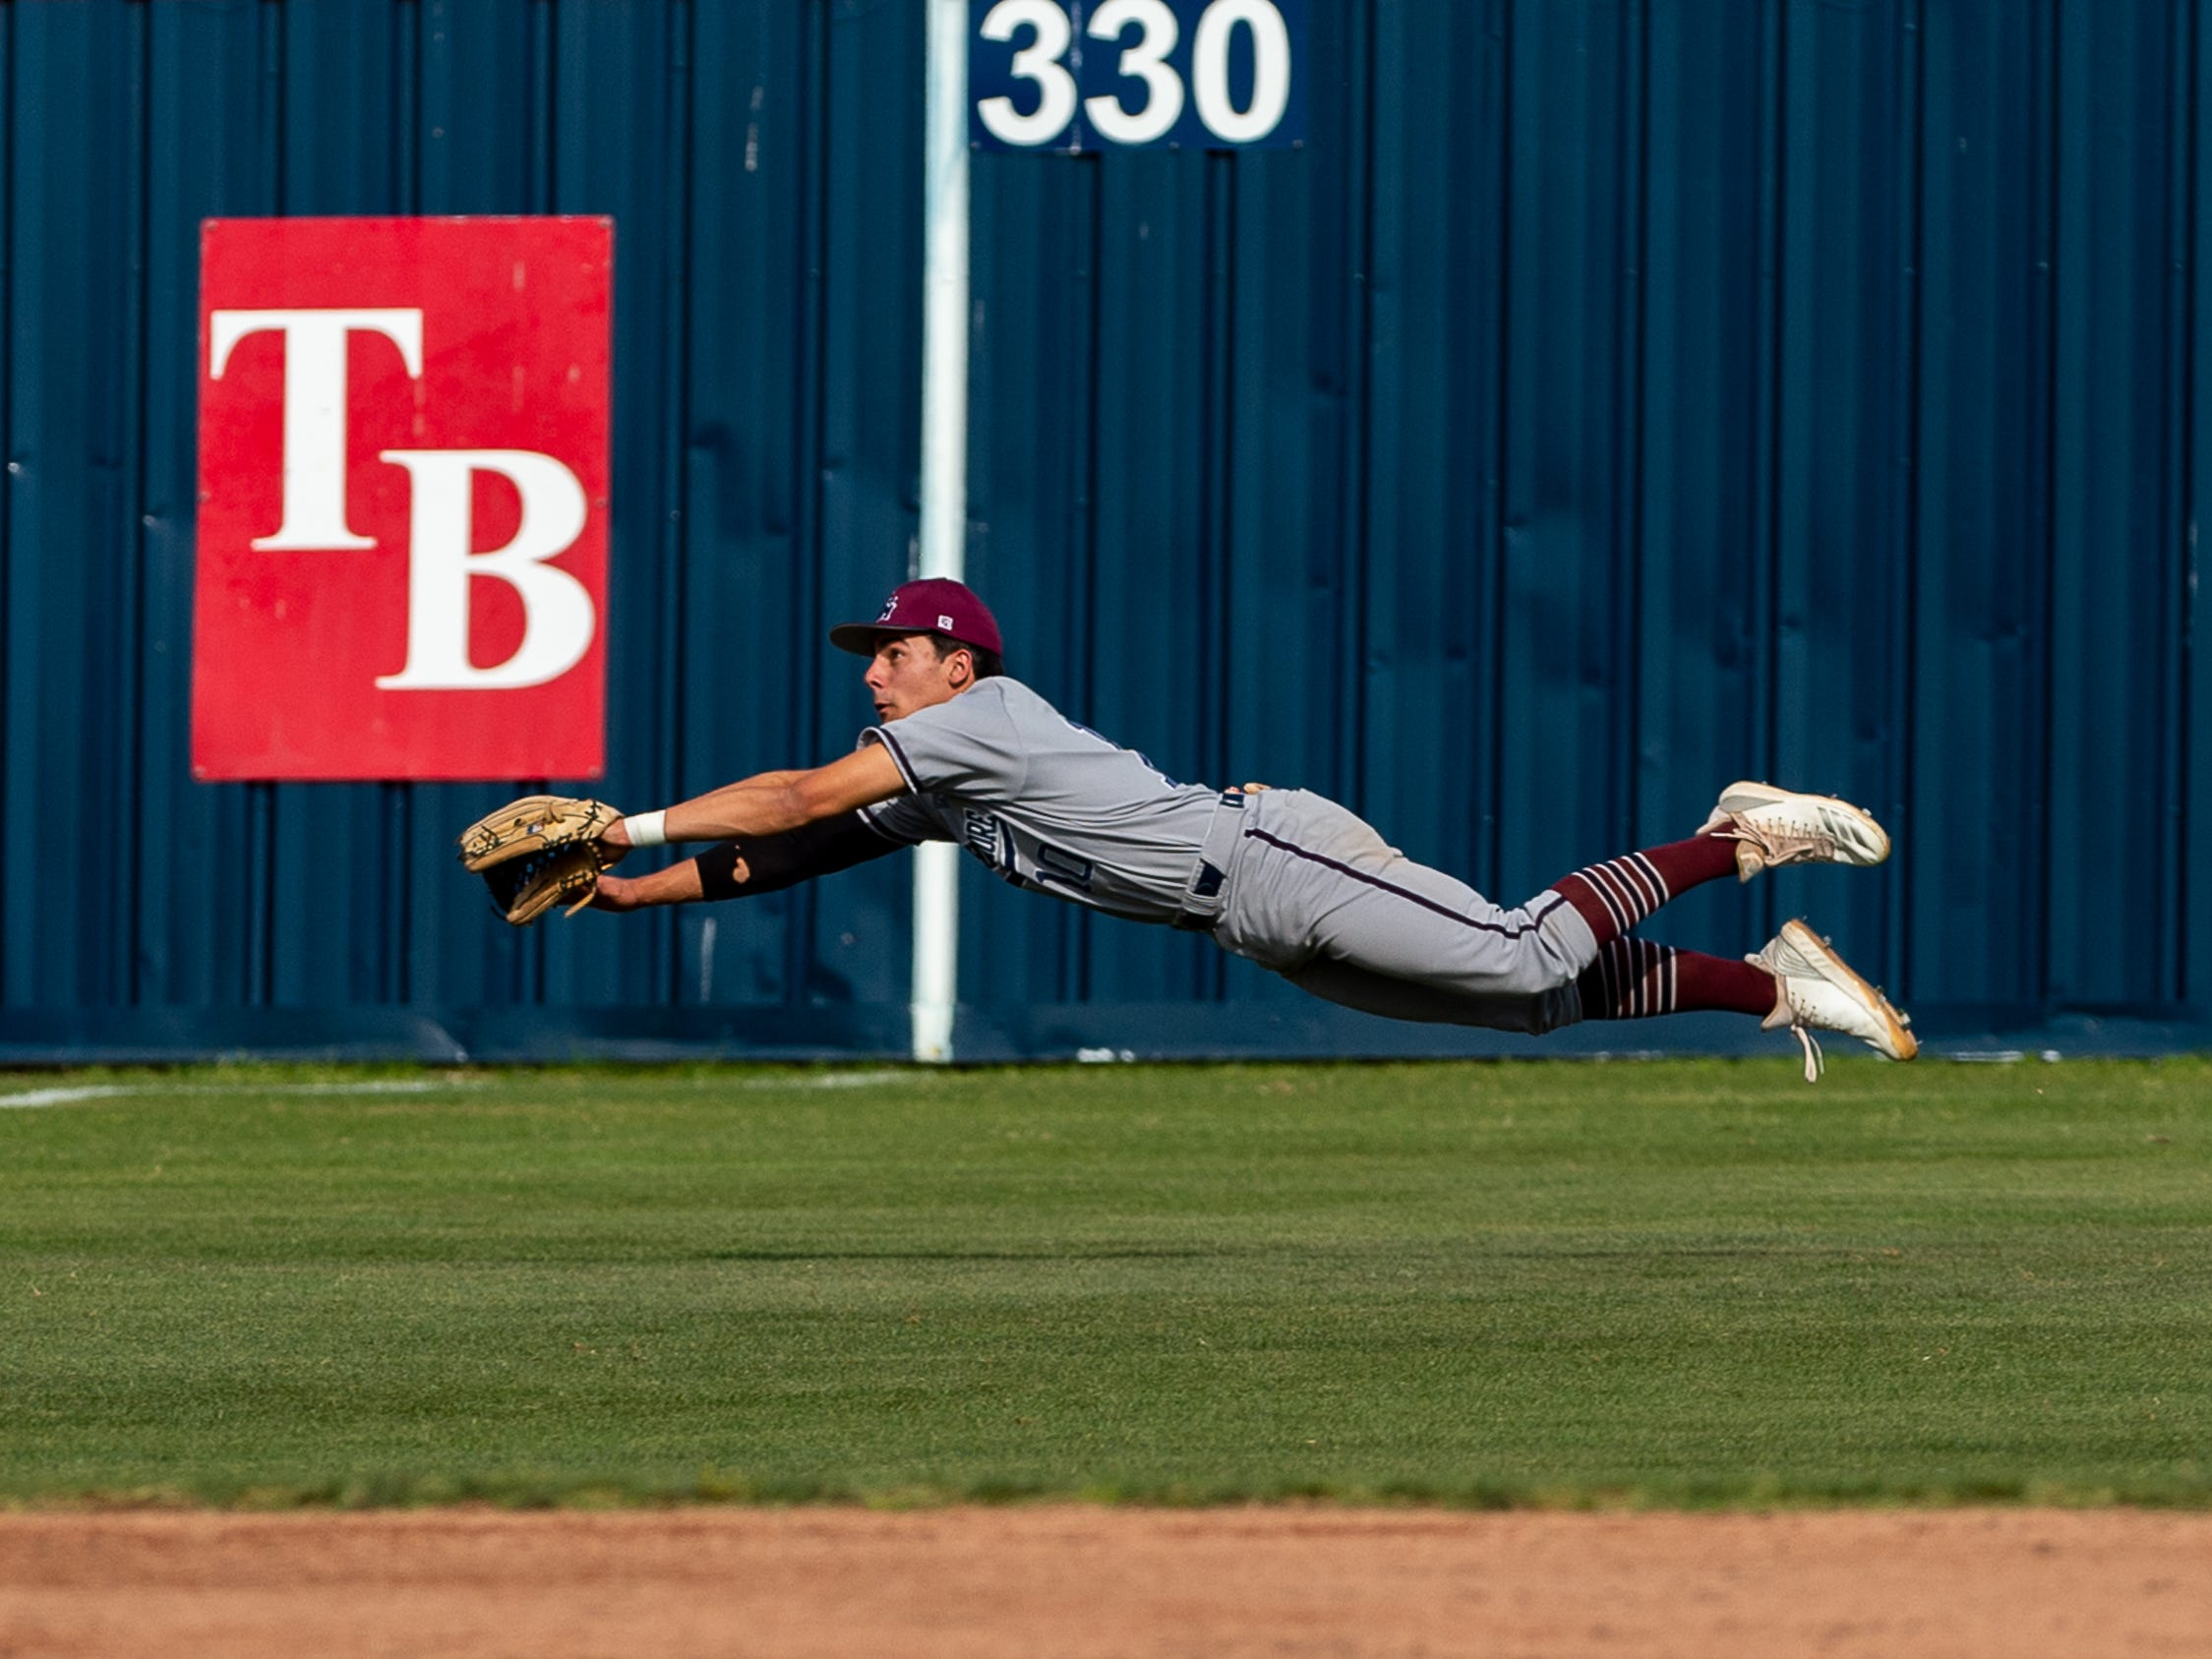 Jake LaPrarie dives for a ball in left field as Teurlings Catholic host St Thomas More baseball. Thursday, March 28, 2019.